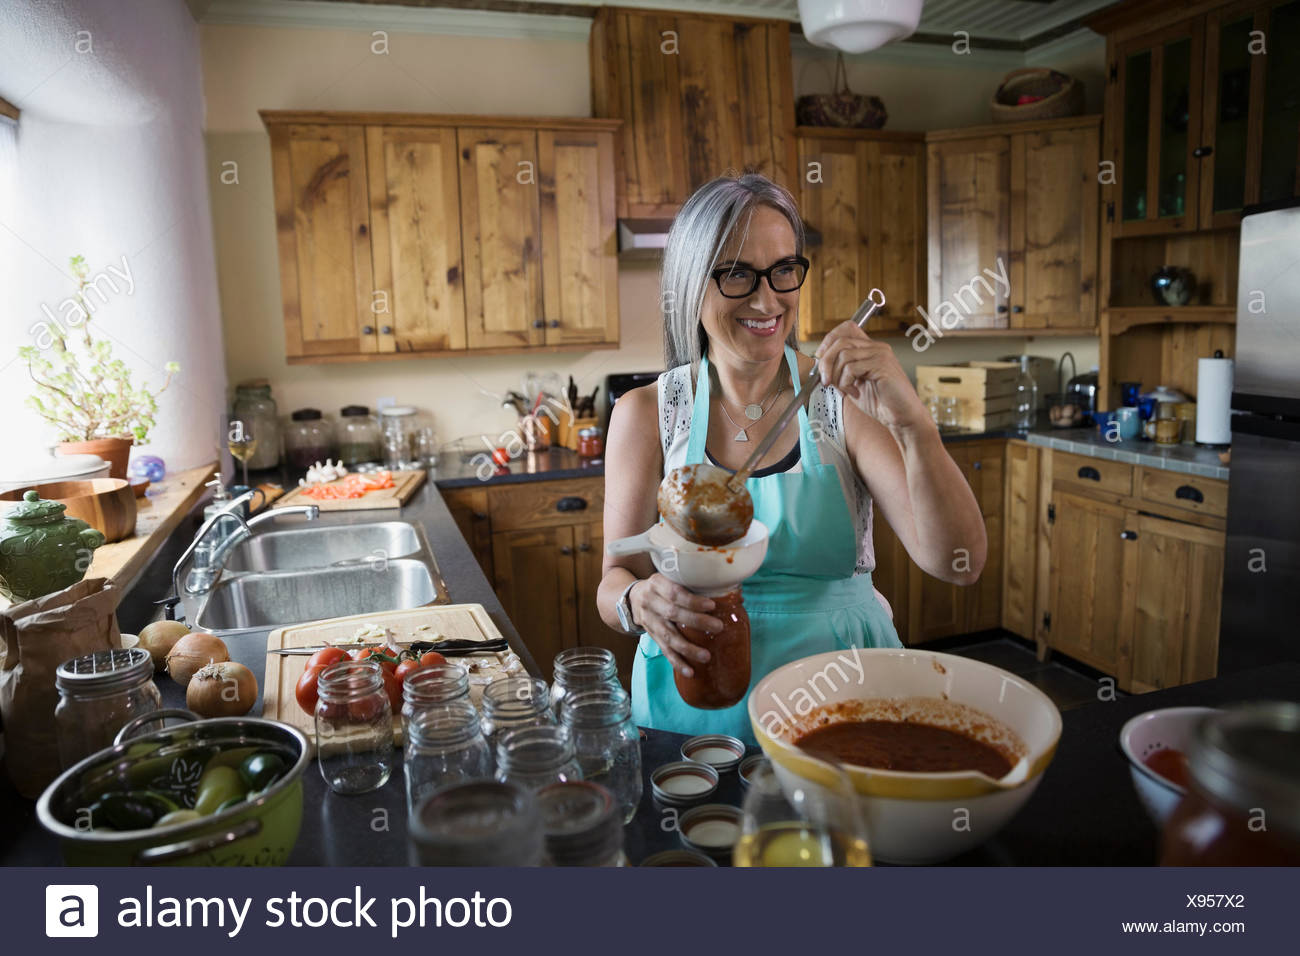 Smiling woman canning tomato sauce in kitchen - Stock Image